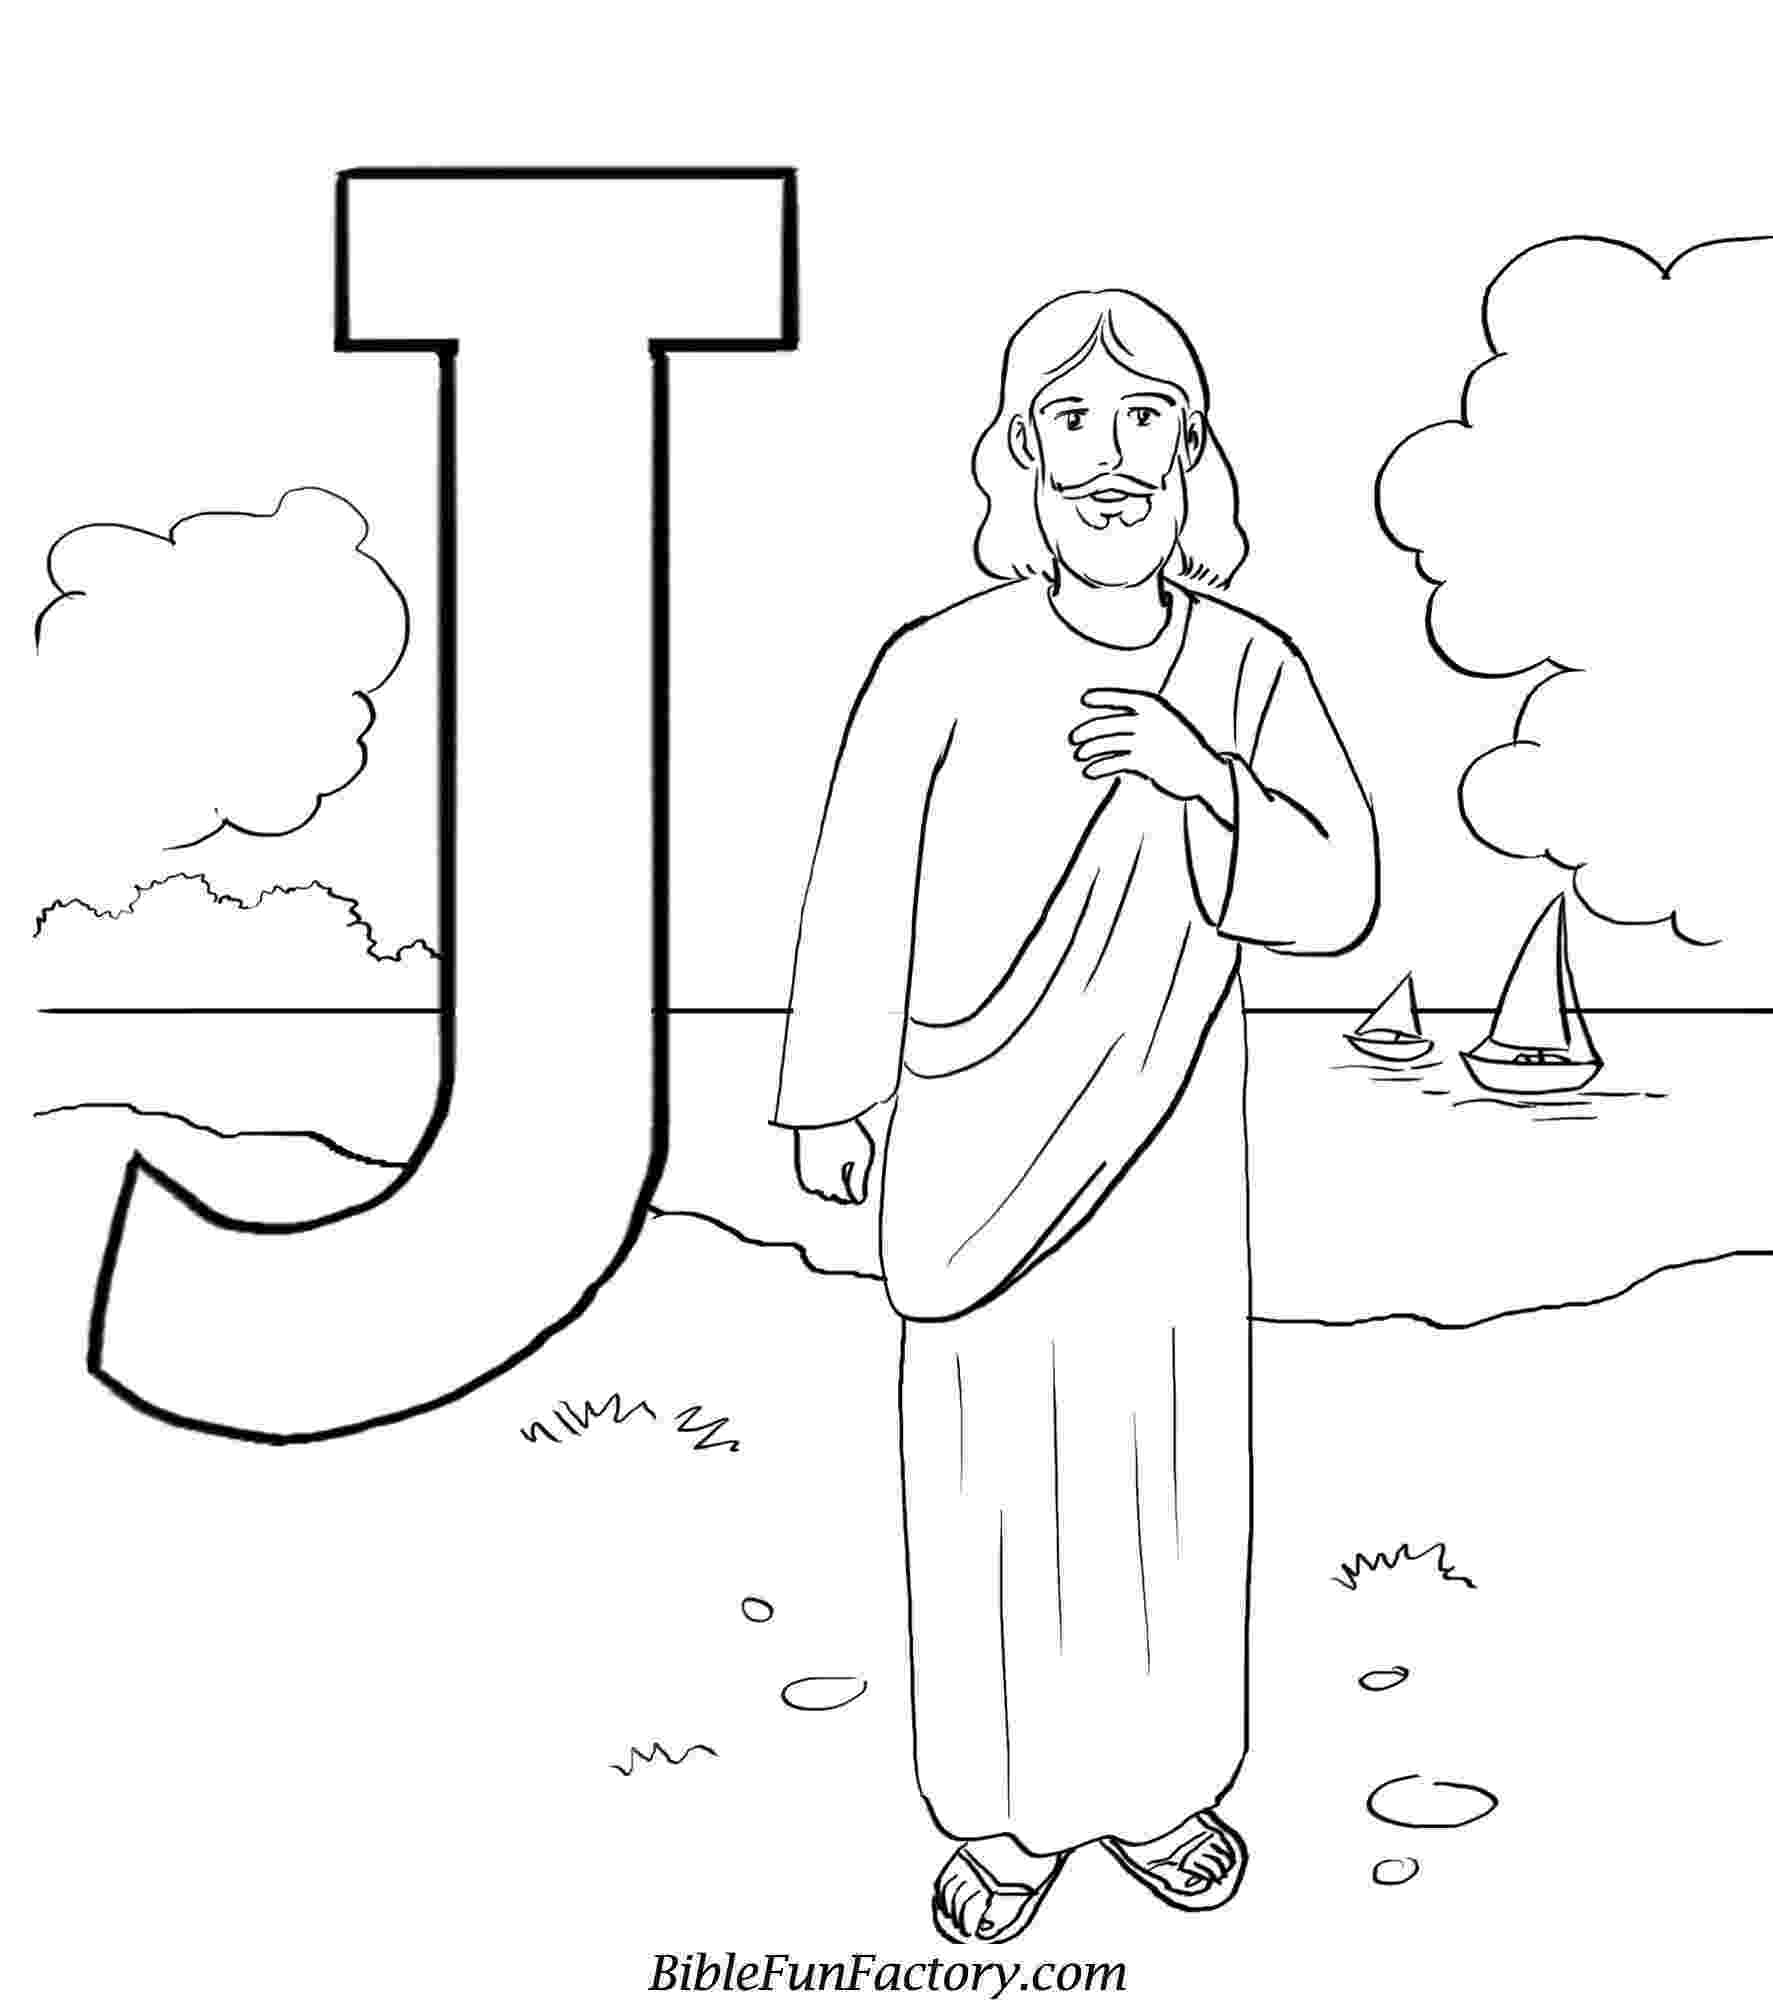 preschool bible coloring pages bible coloring sheets for preschoolers preschool bible coloring pages bible preschool